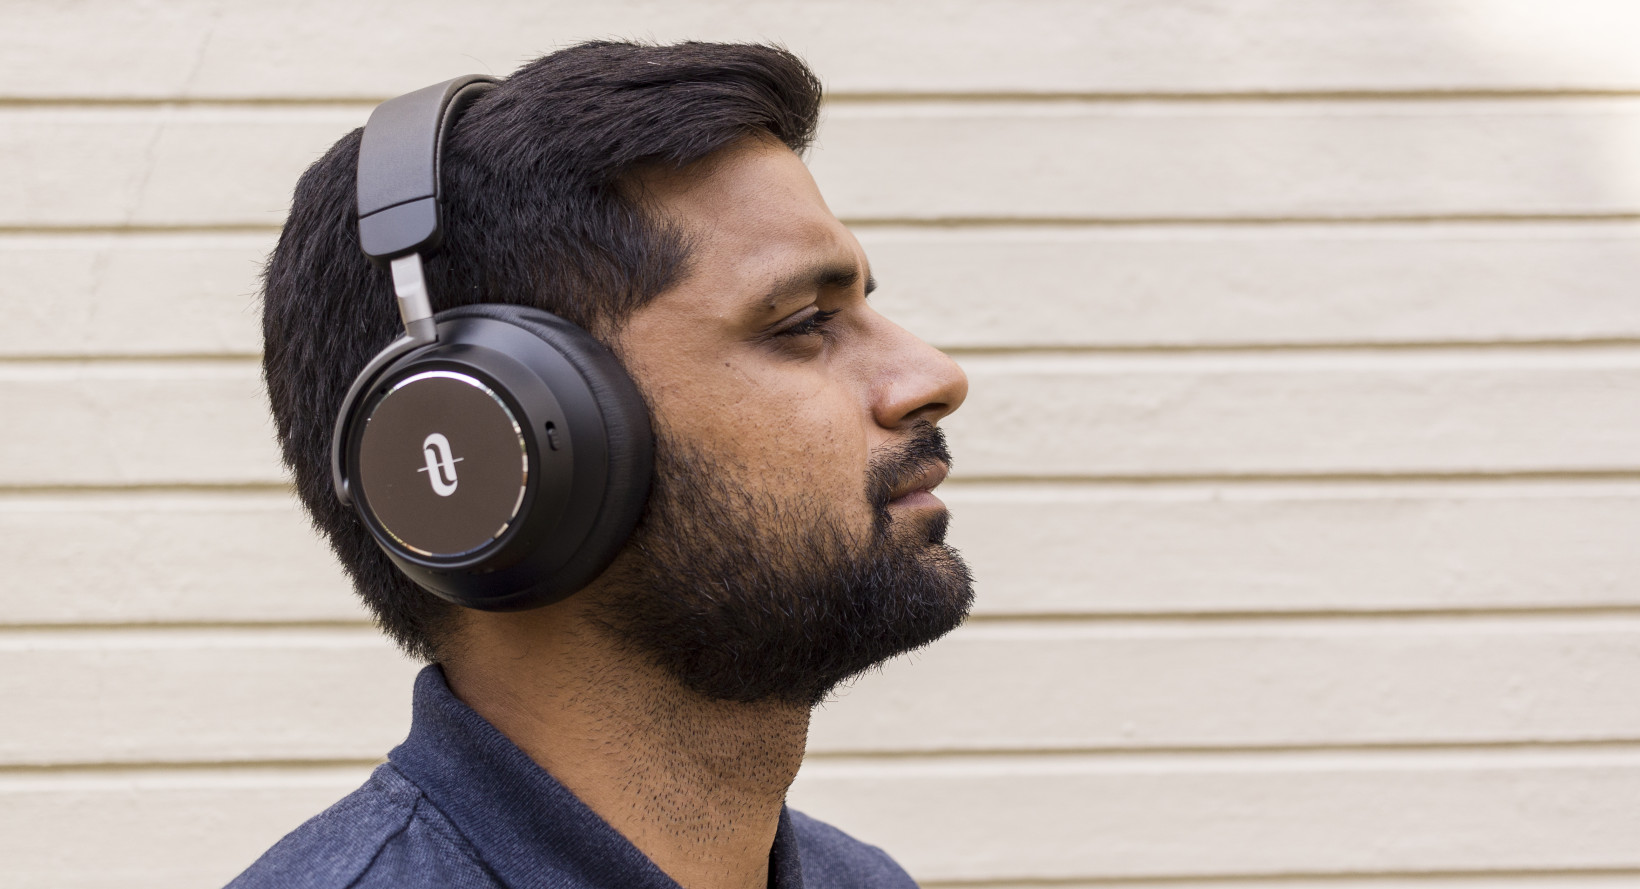 TaoTronics' SoundSurge 46 headphones are comfortable enough to wear for hours on end